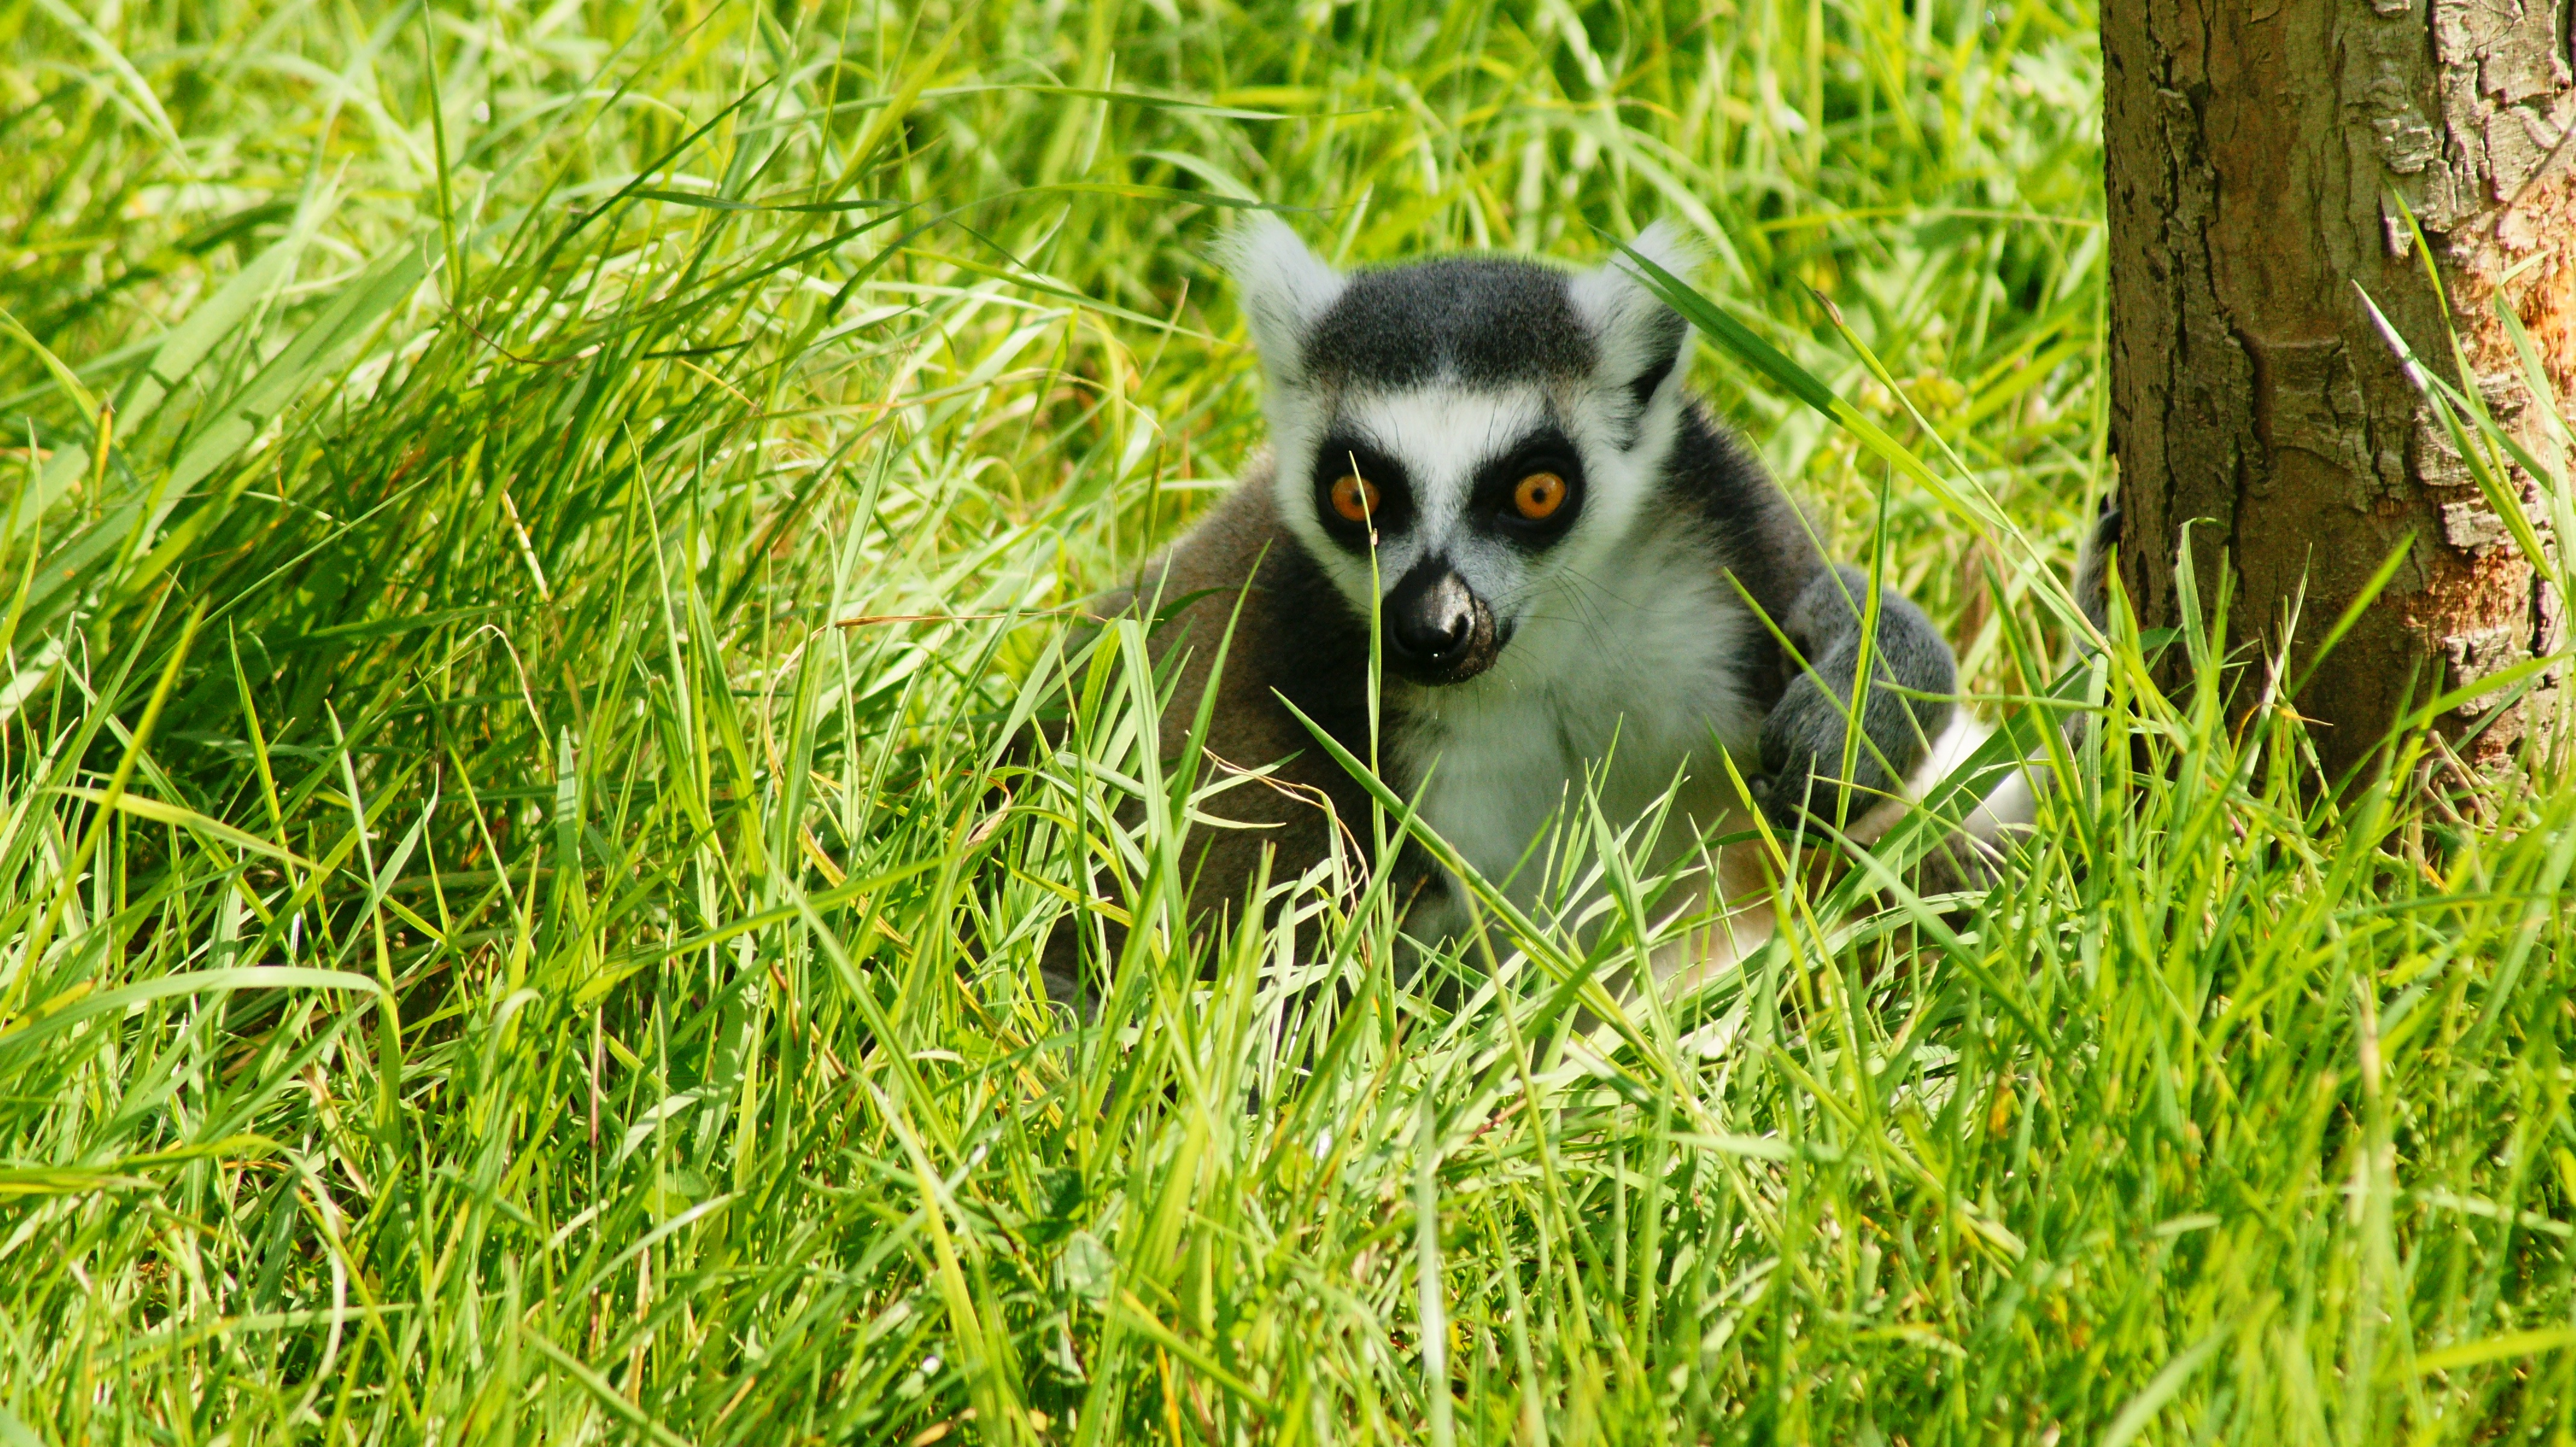 101461 download wallpaper Animals, Lemur, Grass, Beast, Shadow screensavers and pictures for free